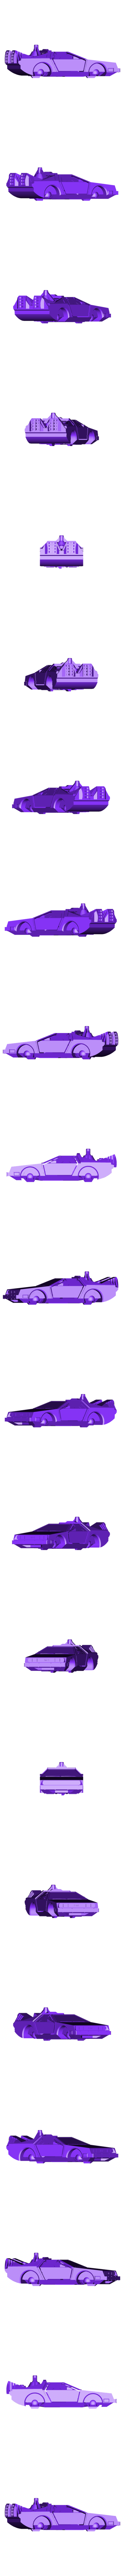 Delorean_NoWheels.stl Download STL file DeLorean DMC-12 (Back to the Future) PRINT-IN-PLACE • Template to 3D print, Atomicosstudio